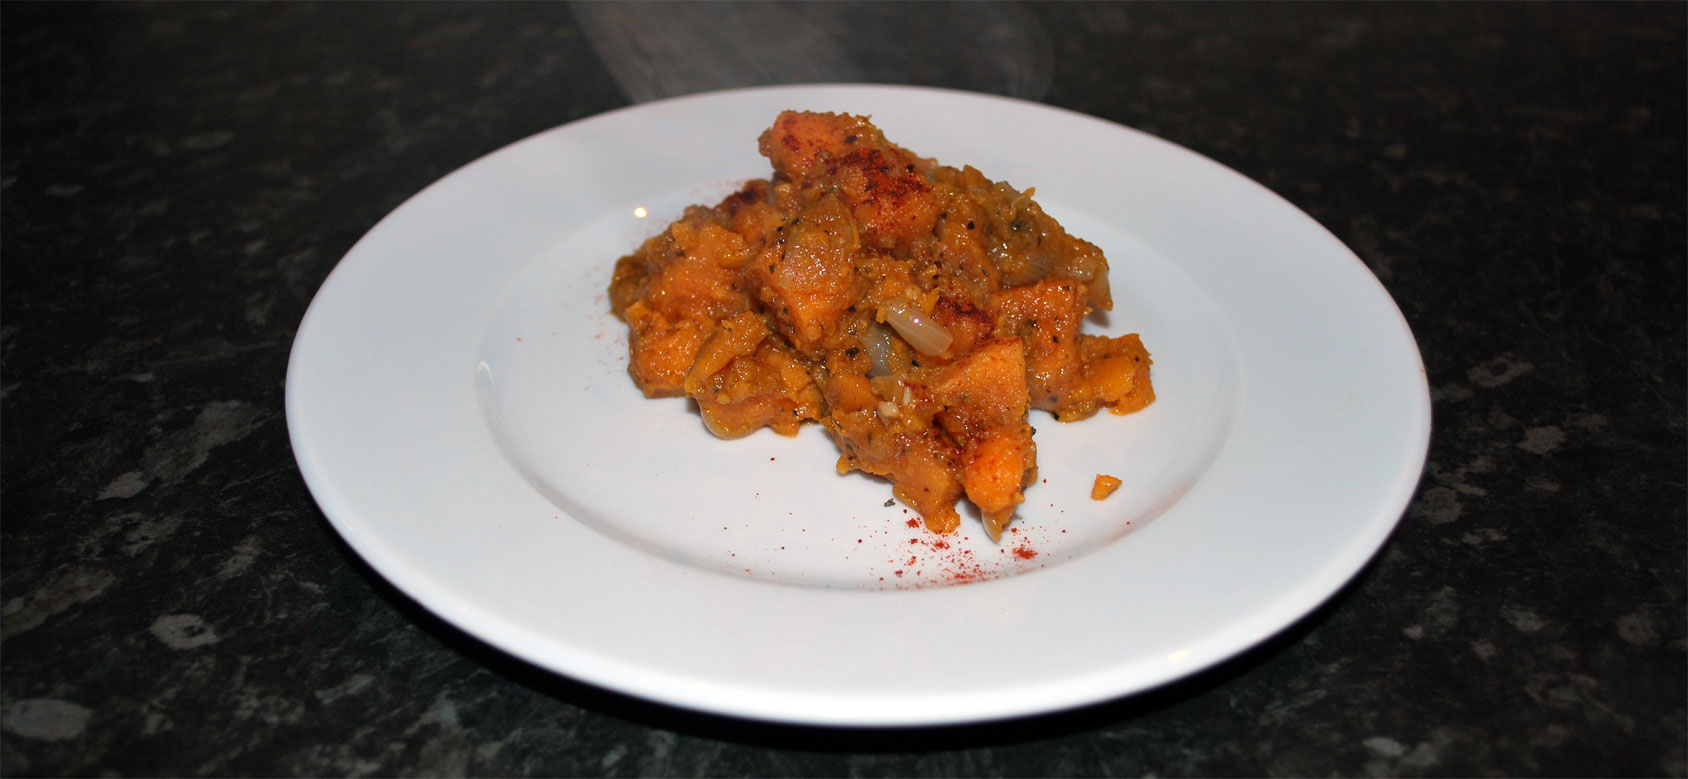 Sweet Potato Crush flavoured with Ras al Hanout